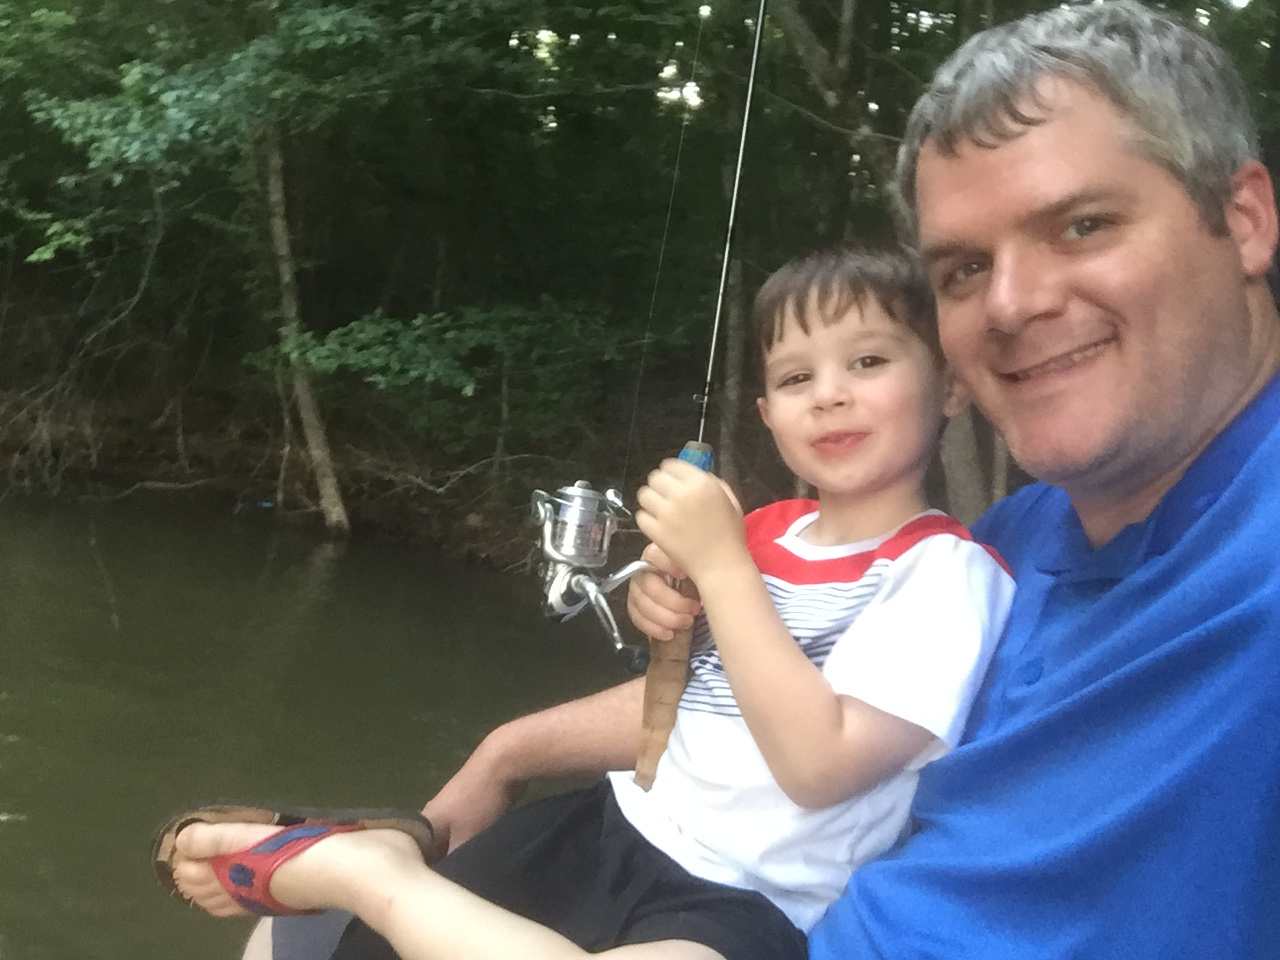 Making USA memories - Fishing with G!